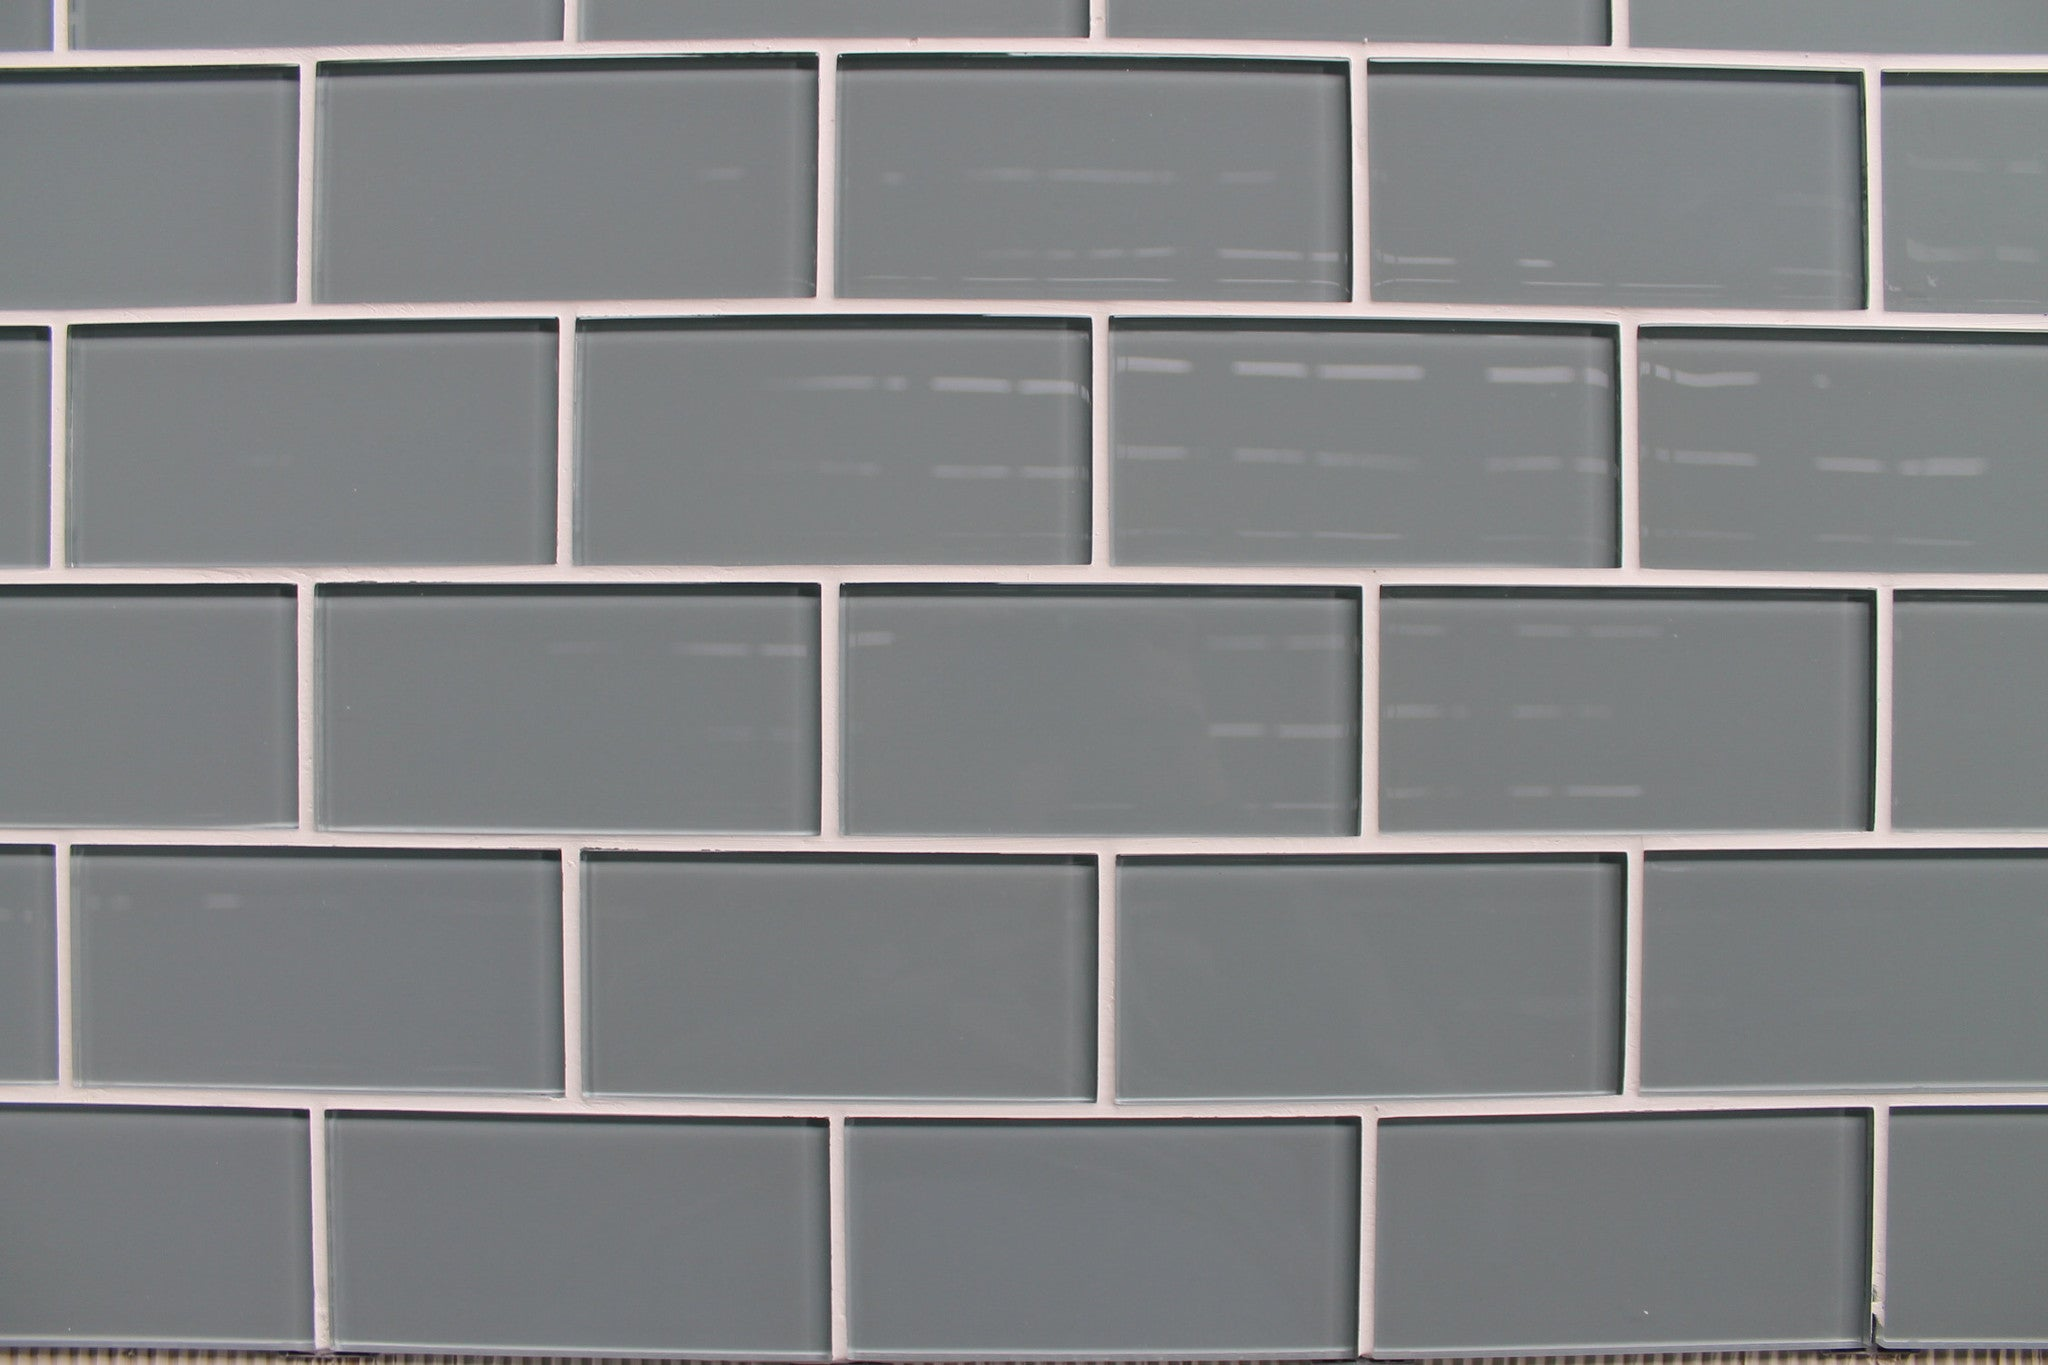 Chimney Smoke Gray 3x6 Glass Subway Tiles